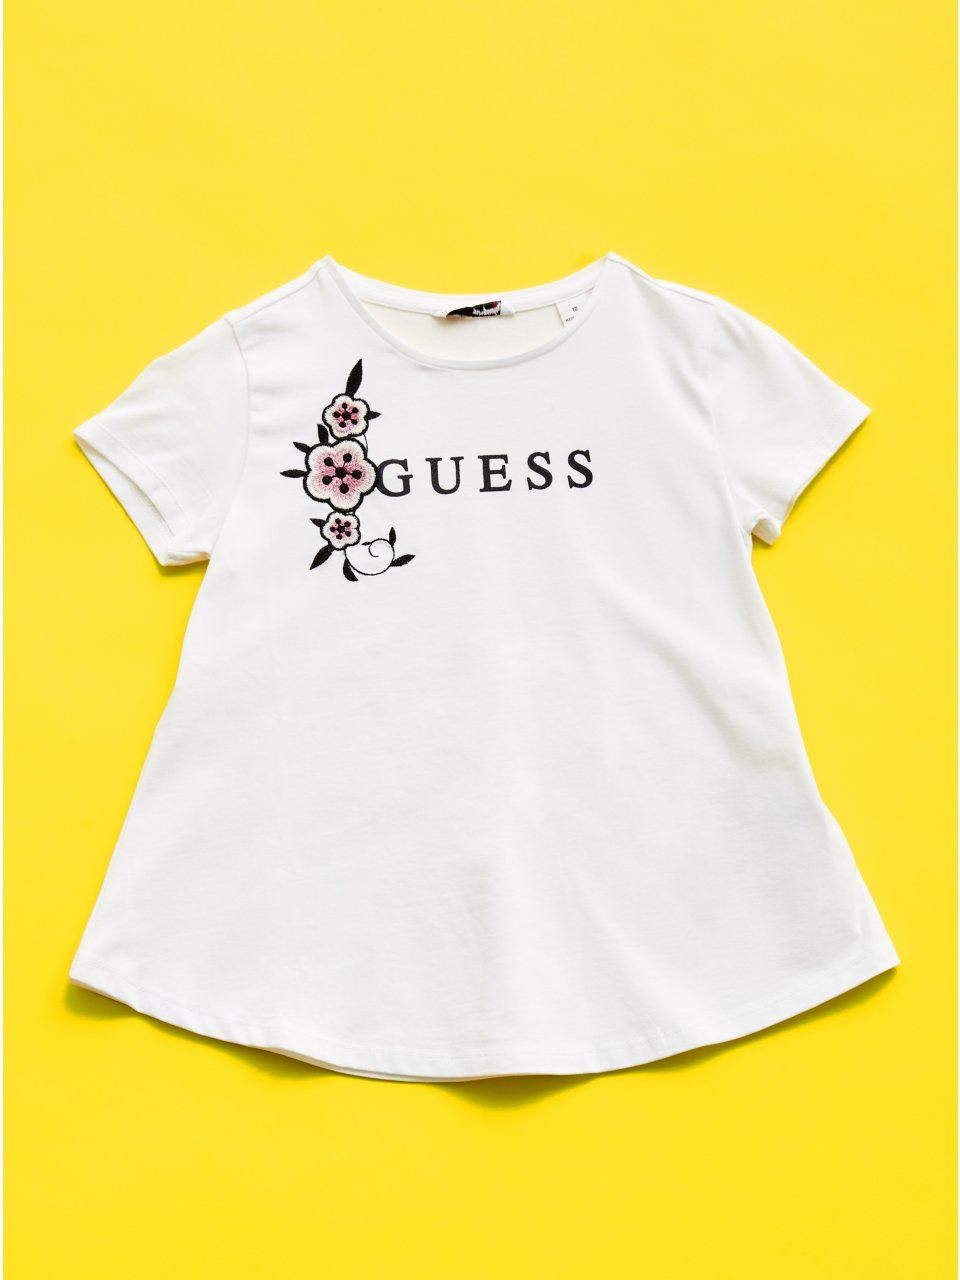 c9a615c26758 GUESS x Miraculous Ladybug Floral Tee (6-10)   Products   Mens tops ...